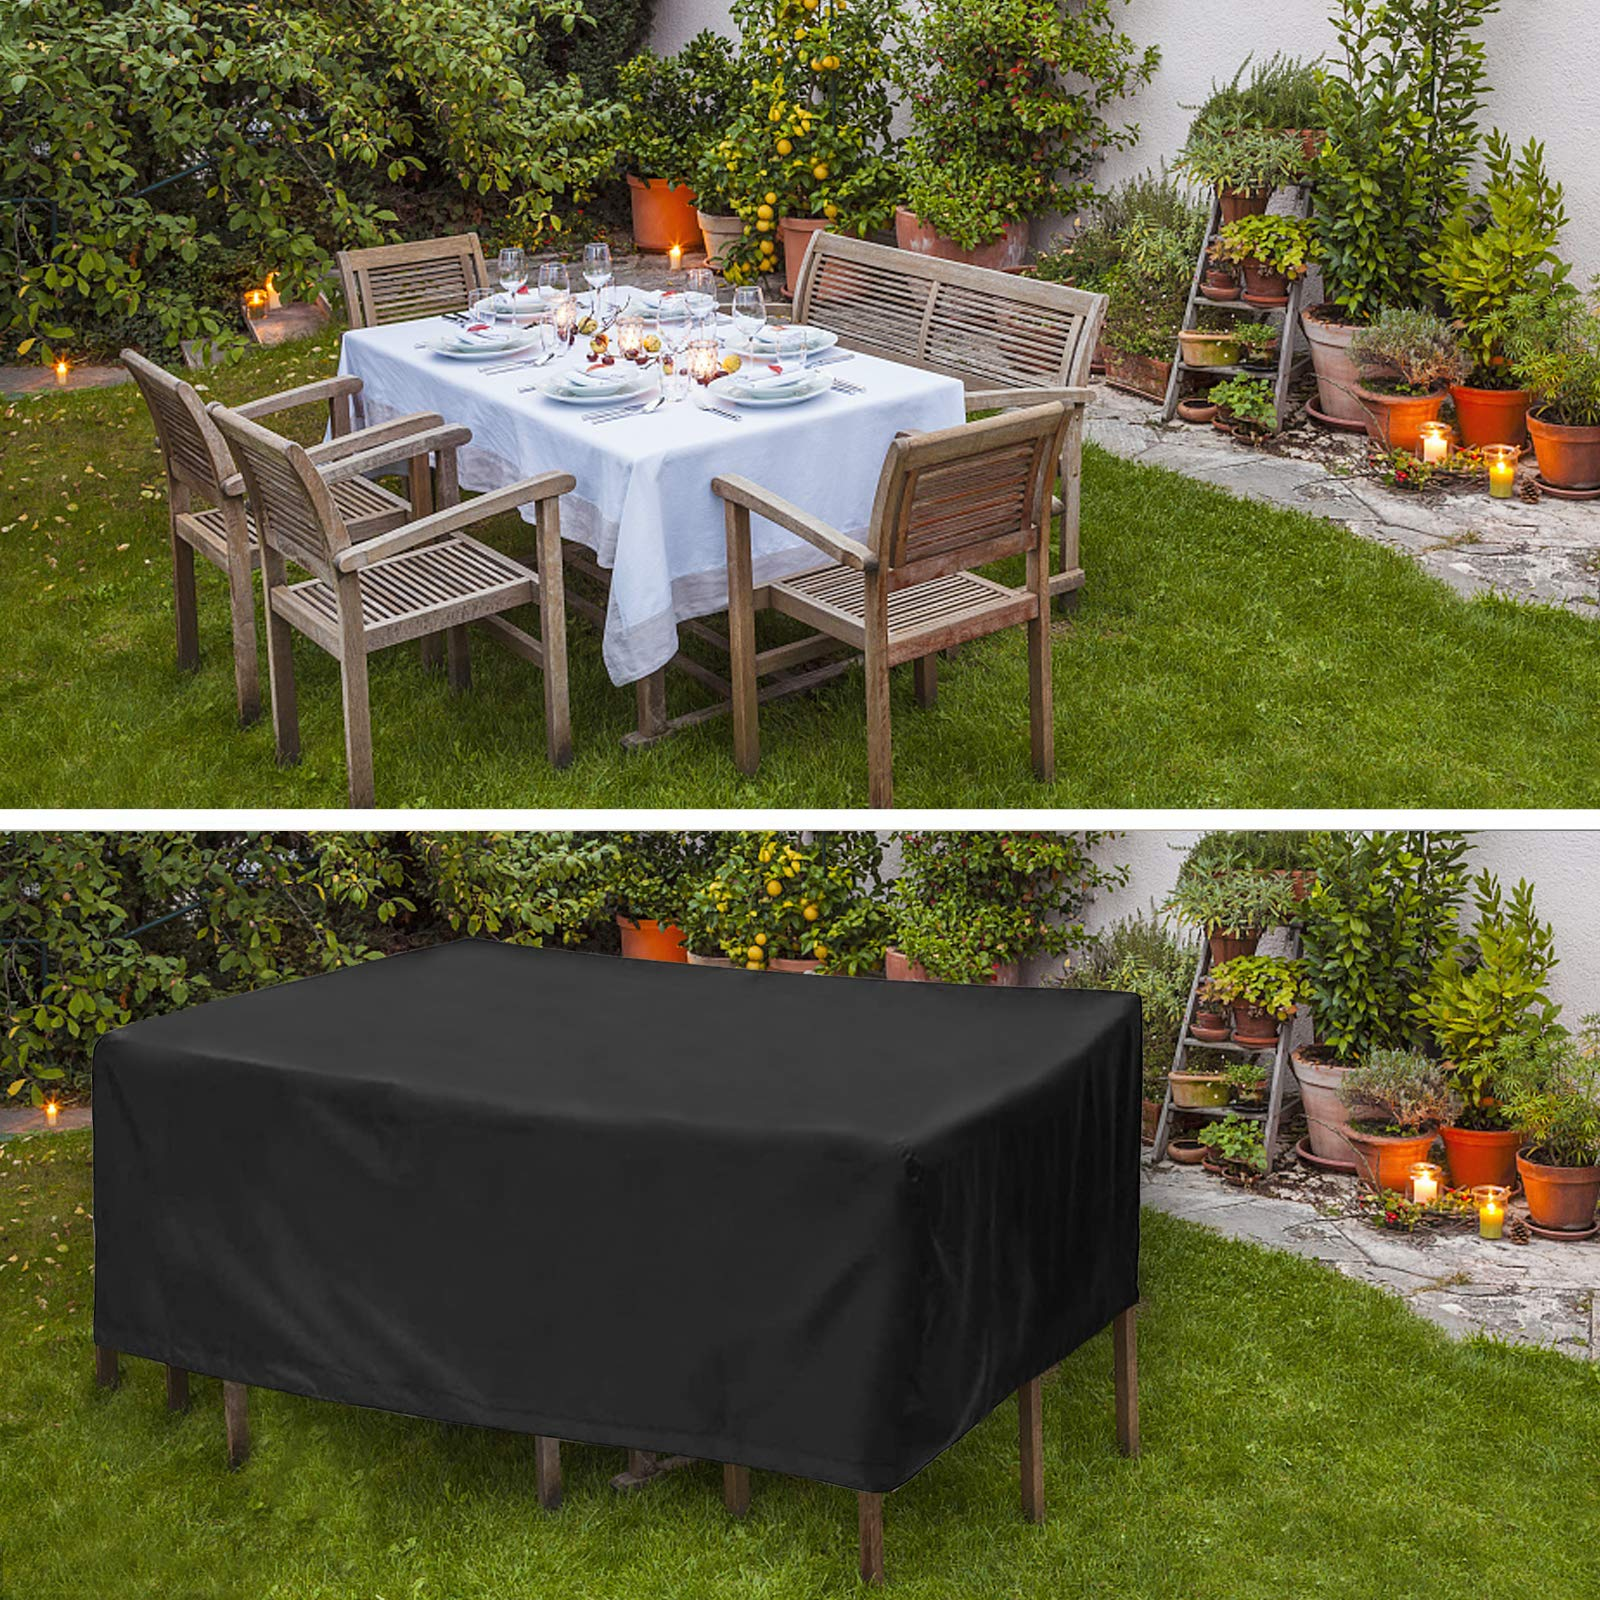 Landrip Garden Furniture Covers, Outdoor Table Covers Waterproof, Heavy Duty 420D Patio Set Furniture Covers (350 x 260 x 90CM)